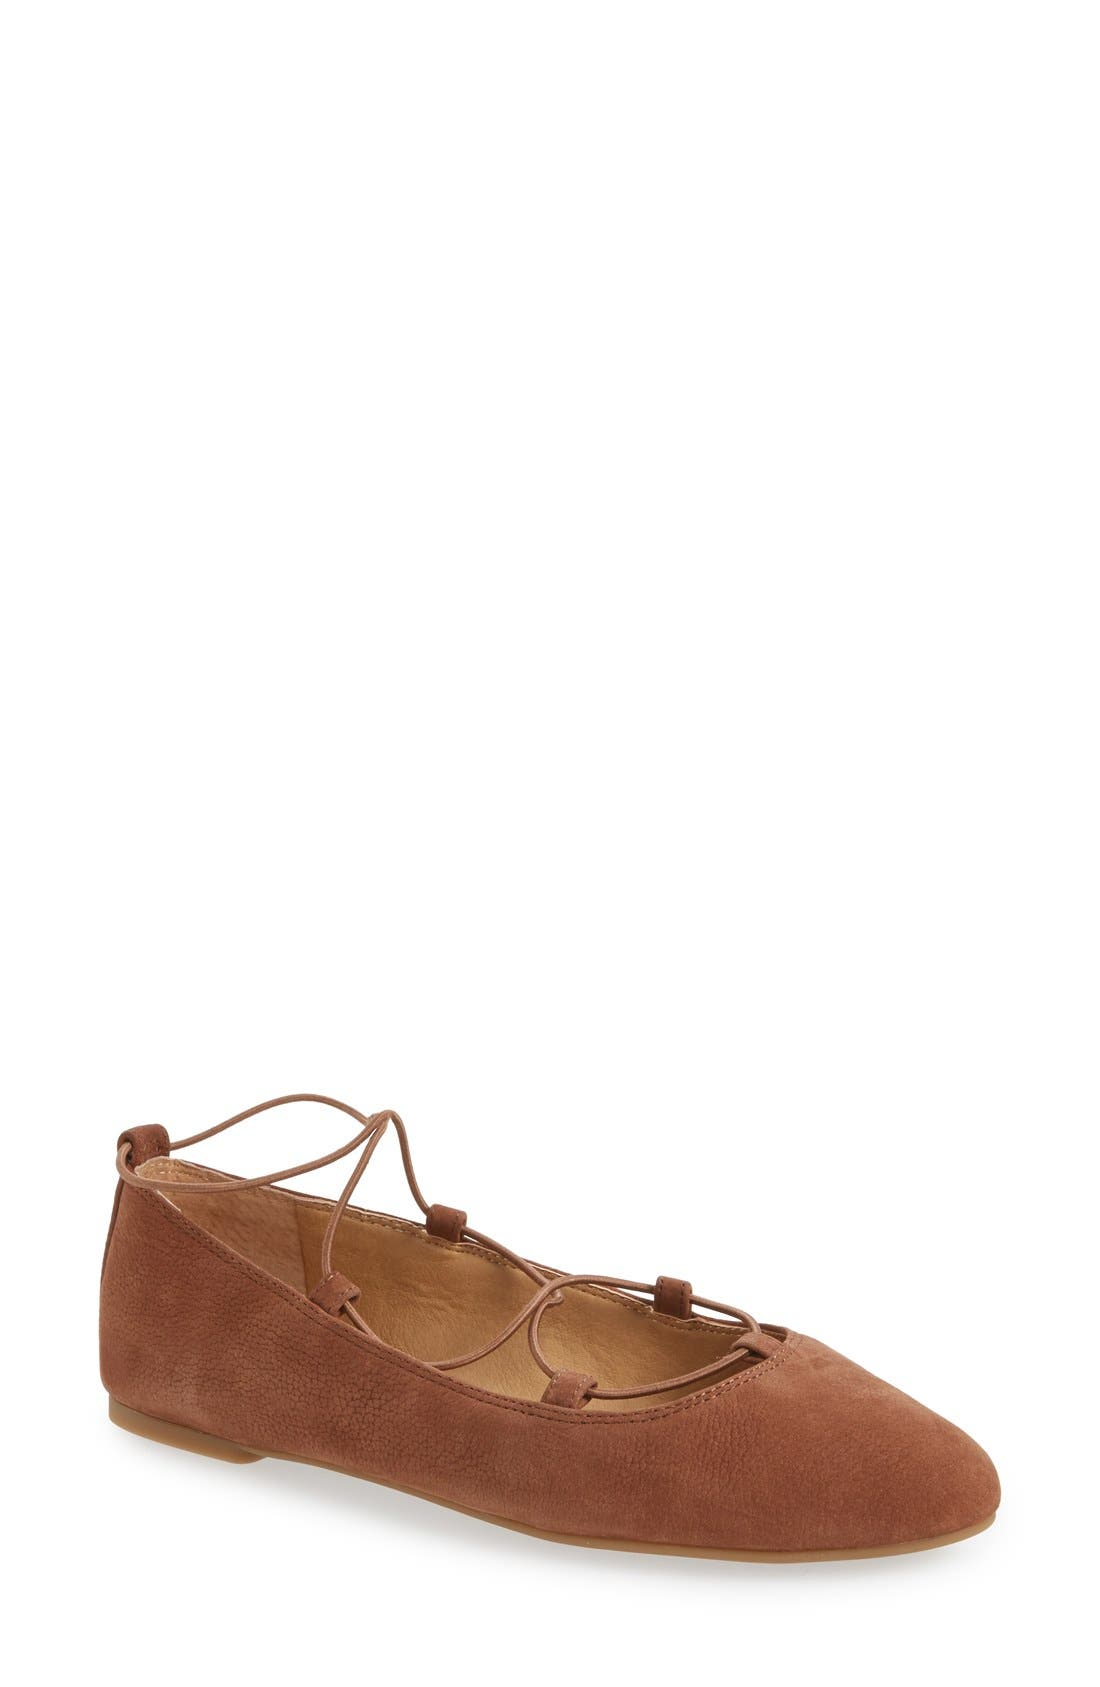 'Aviee' Lace-Up Flat,                             Main thumbnail 5, color,